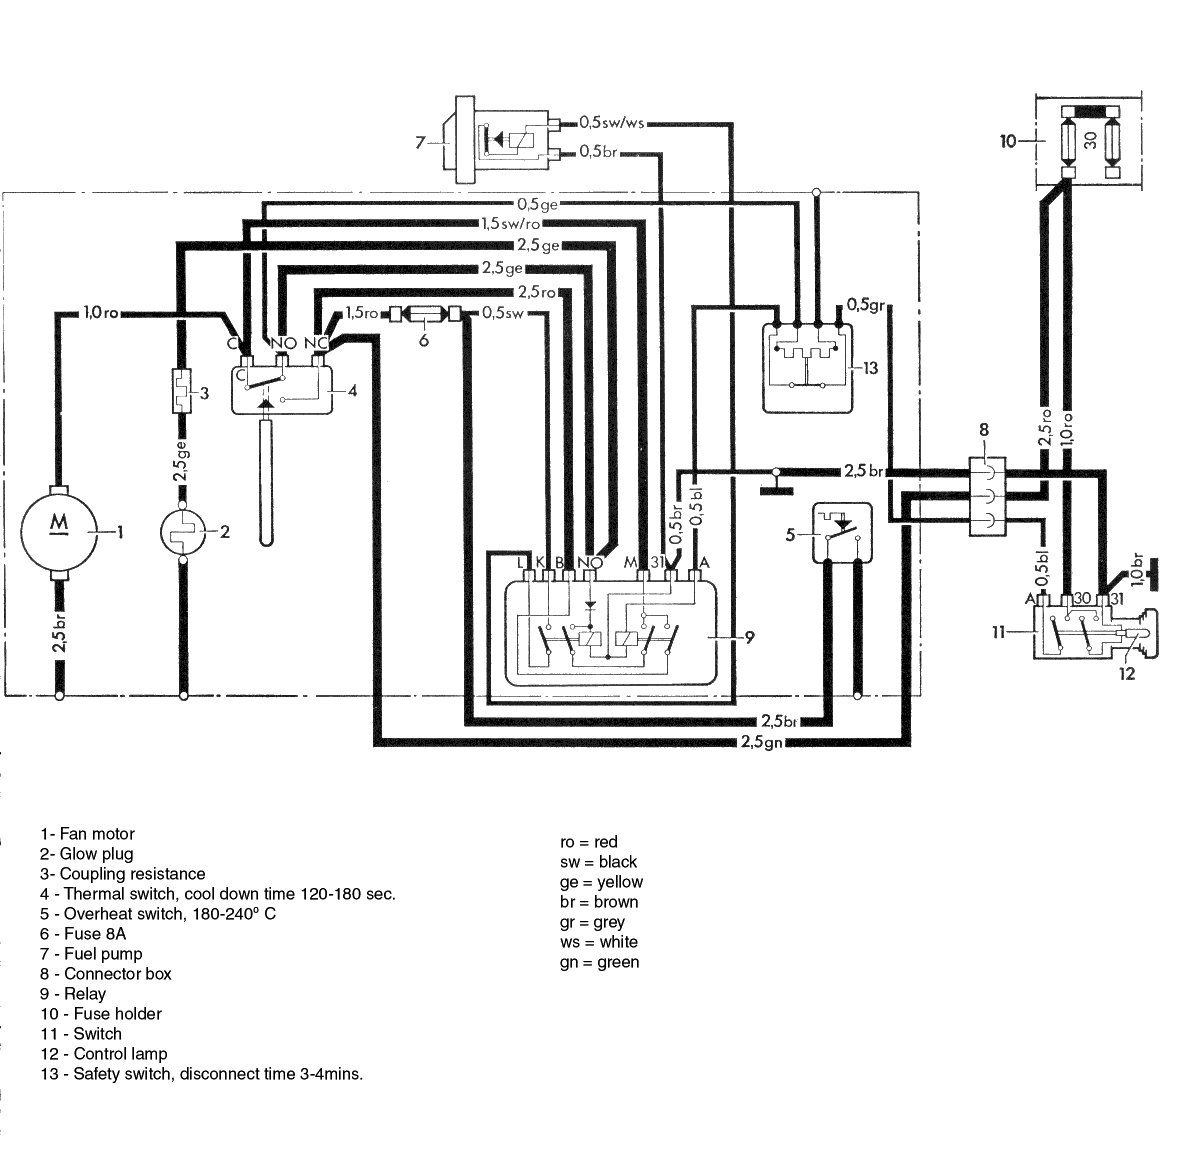 BN2_wiring thesamba com vw eberspacher gas heater installation manual bn gas heater wiring diagram at bayanpartner.co